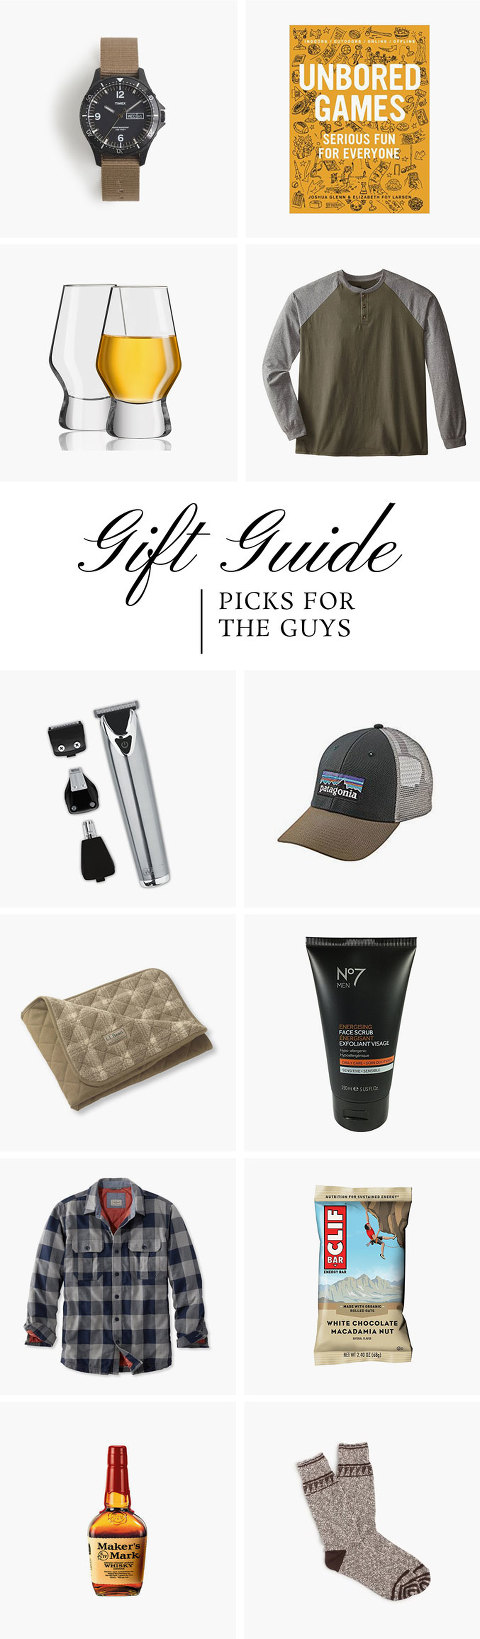 http://www.dreamgreendiy.com/wp-content/uploads/2017/12/28-45277-post/Christmas-Gift-Guide-Manly-Man(pp_w480_h1639).jpg